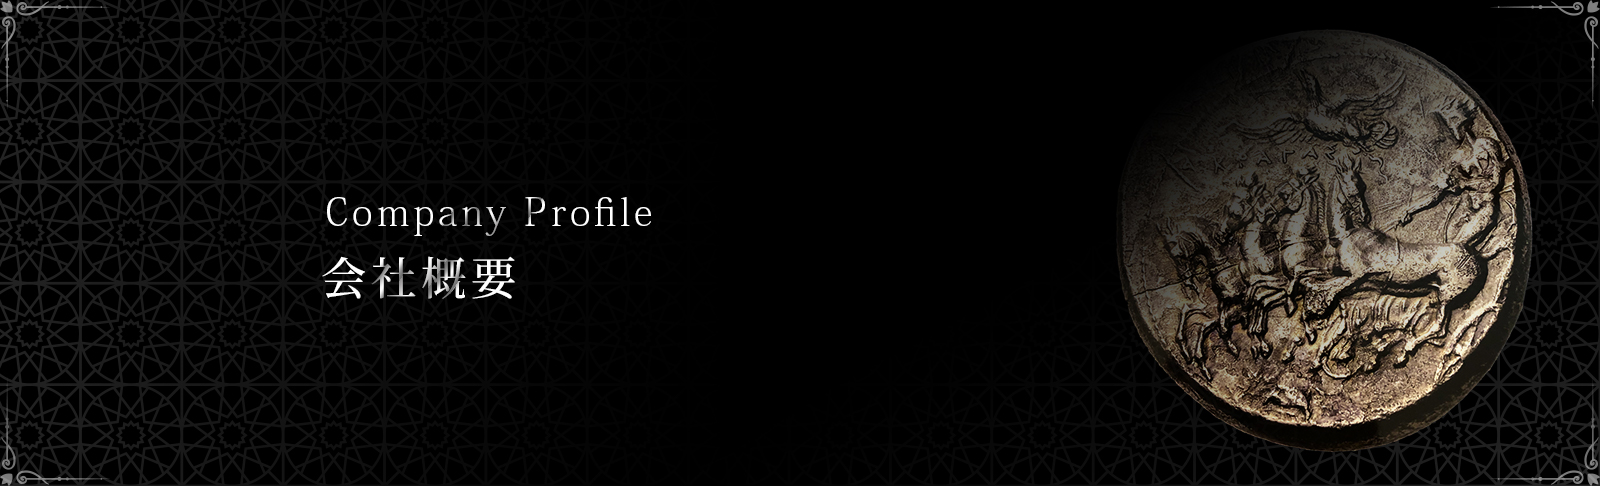 banner_pc_companyprofile_01